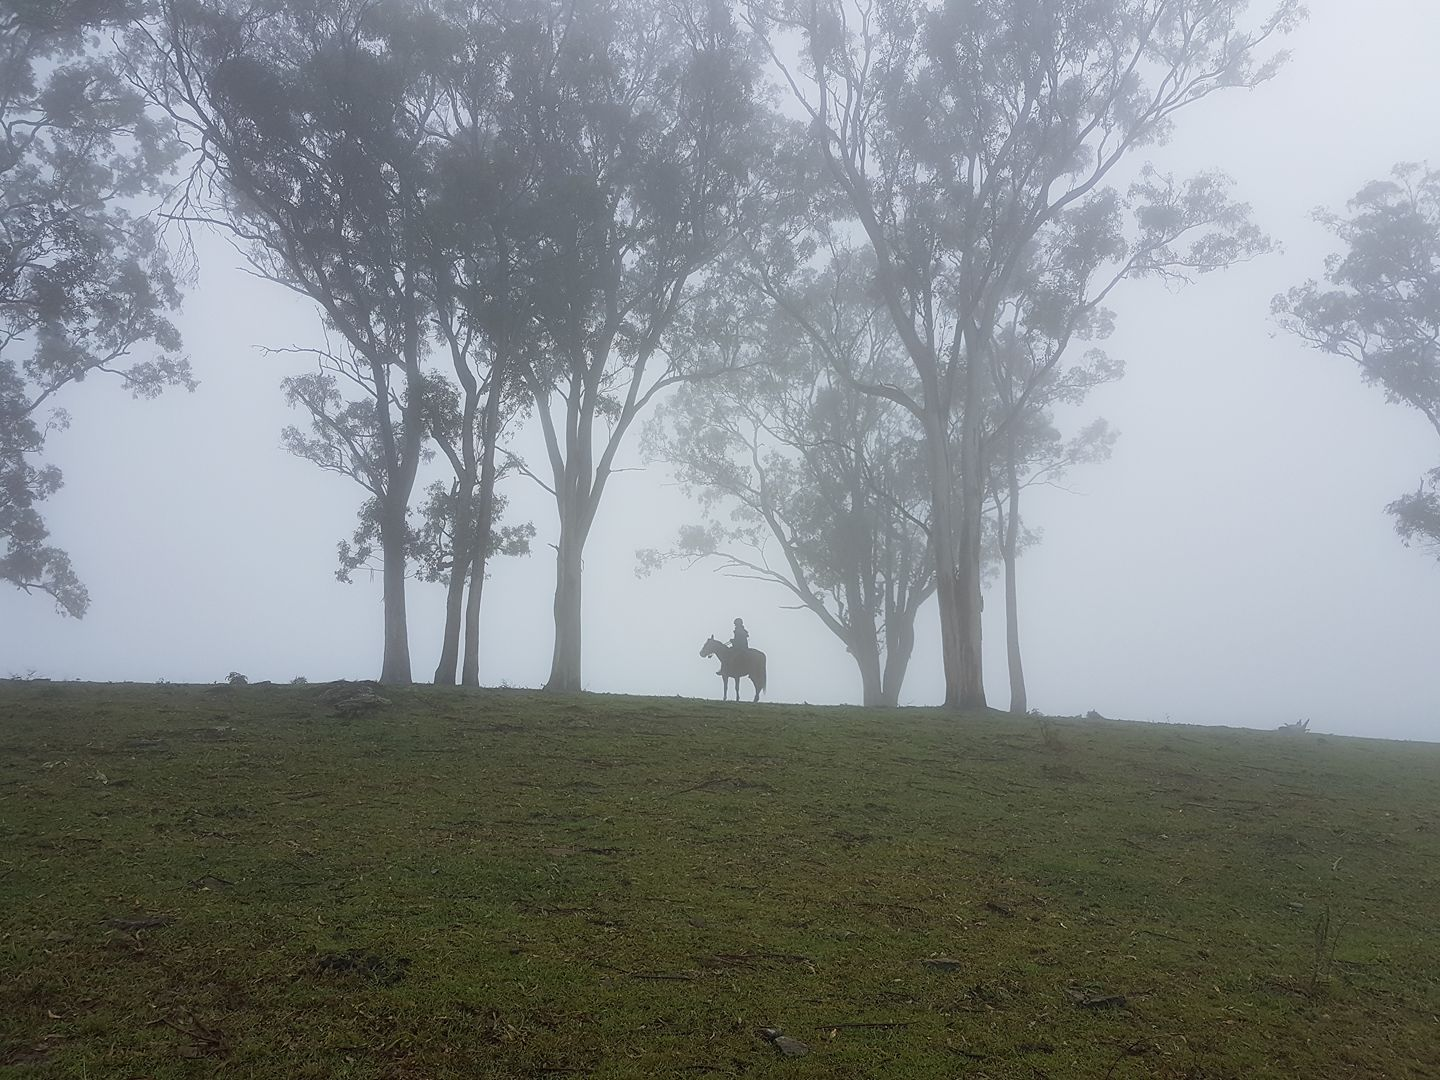 Horse riding in the clouds at Ocean View via Natasha Koning